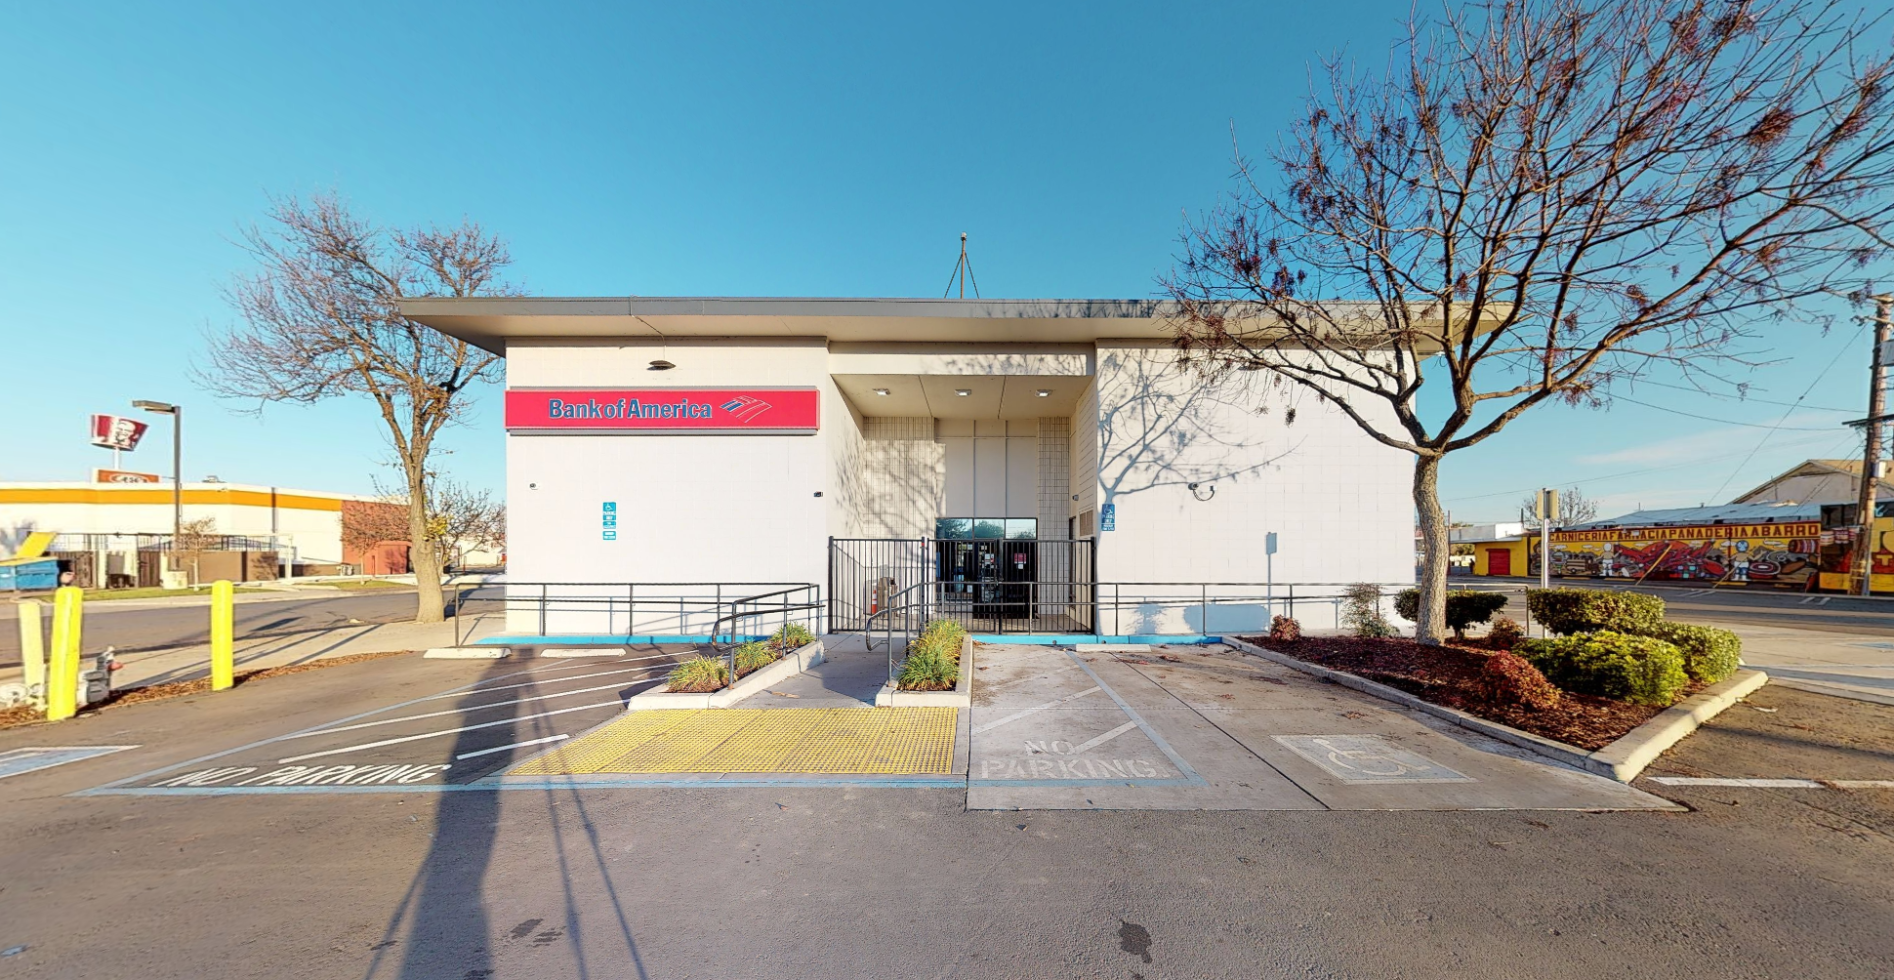 Bank of America financial center with walk-up ATM | 210 E Dr Martin Luther King Jr Blvd, Stockton, CA 95206